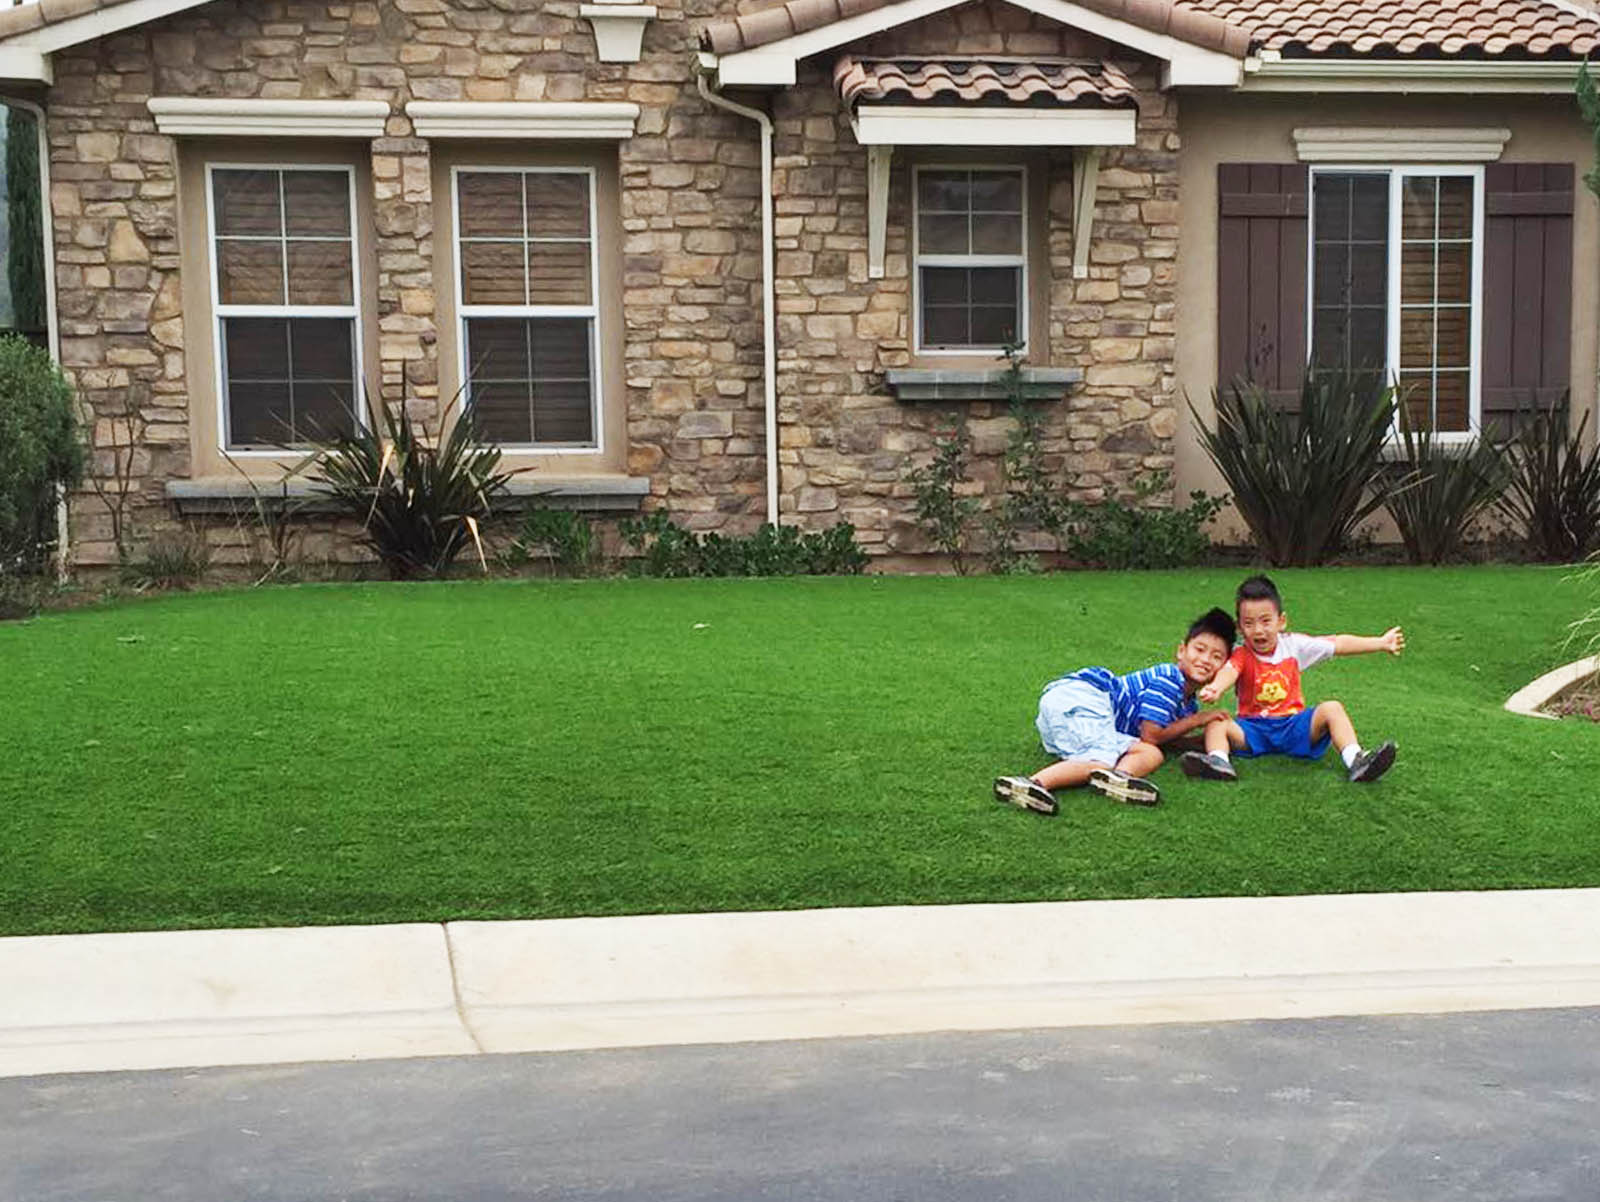 Artificial grass synthetic turf drought water children front yard playing two boys summer green grass lawn gray stone house